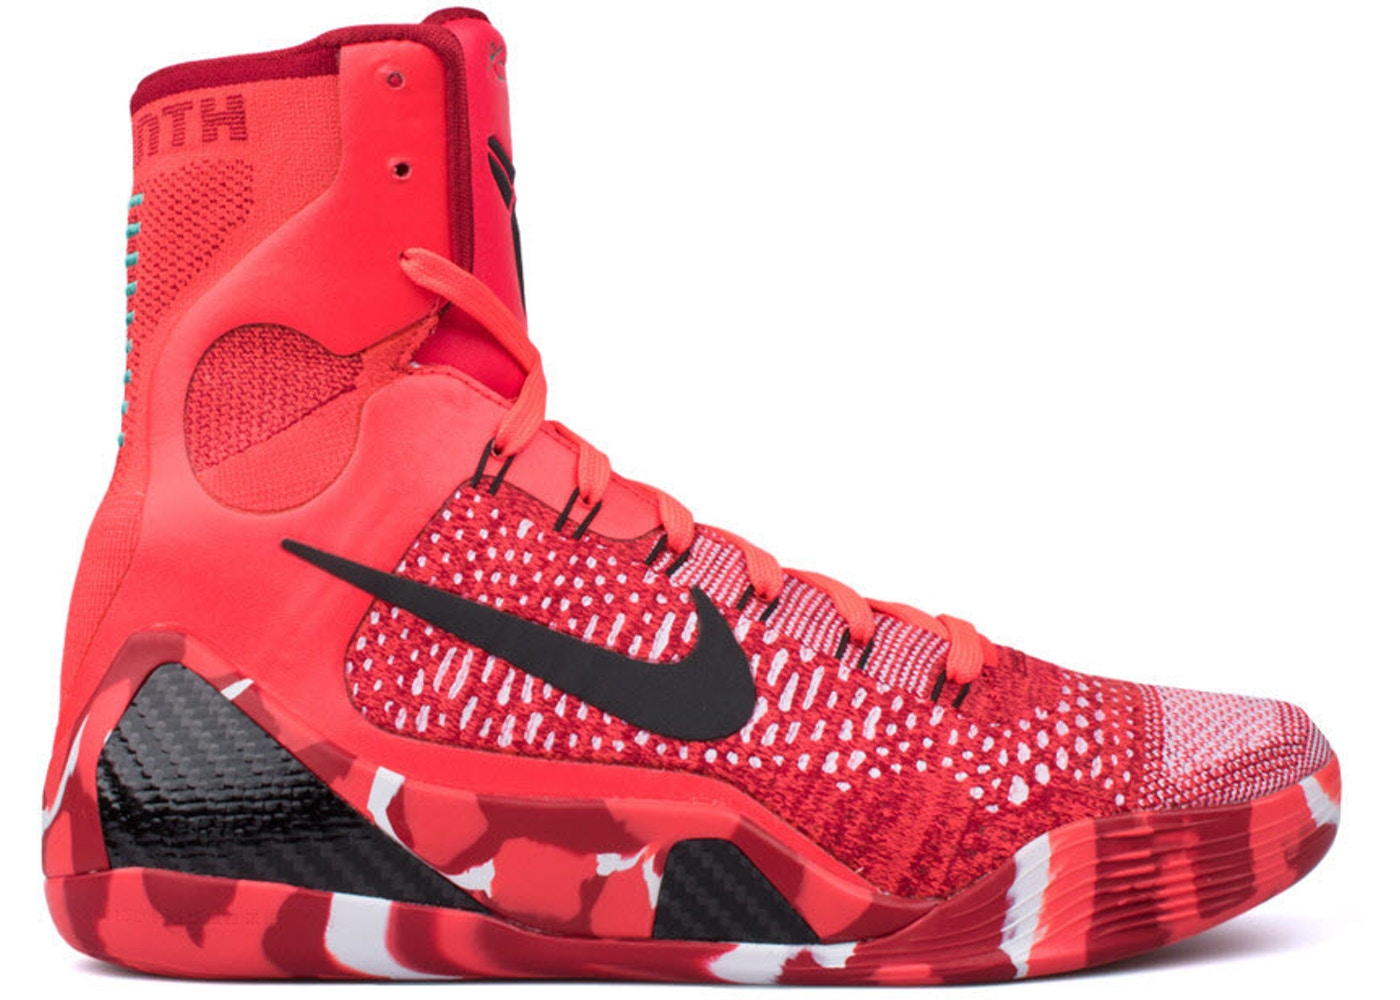 premium selection ee1d4 92175 Kobe 9 Elite Christmas (2014) - 630847-600